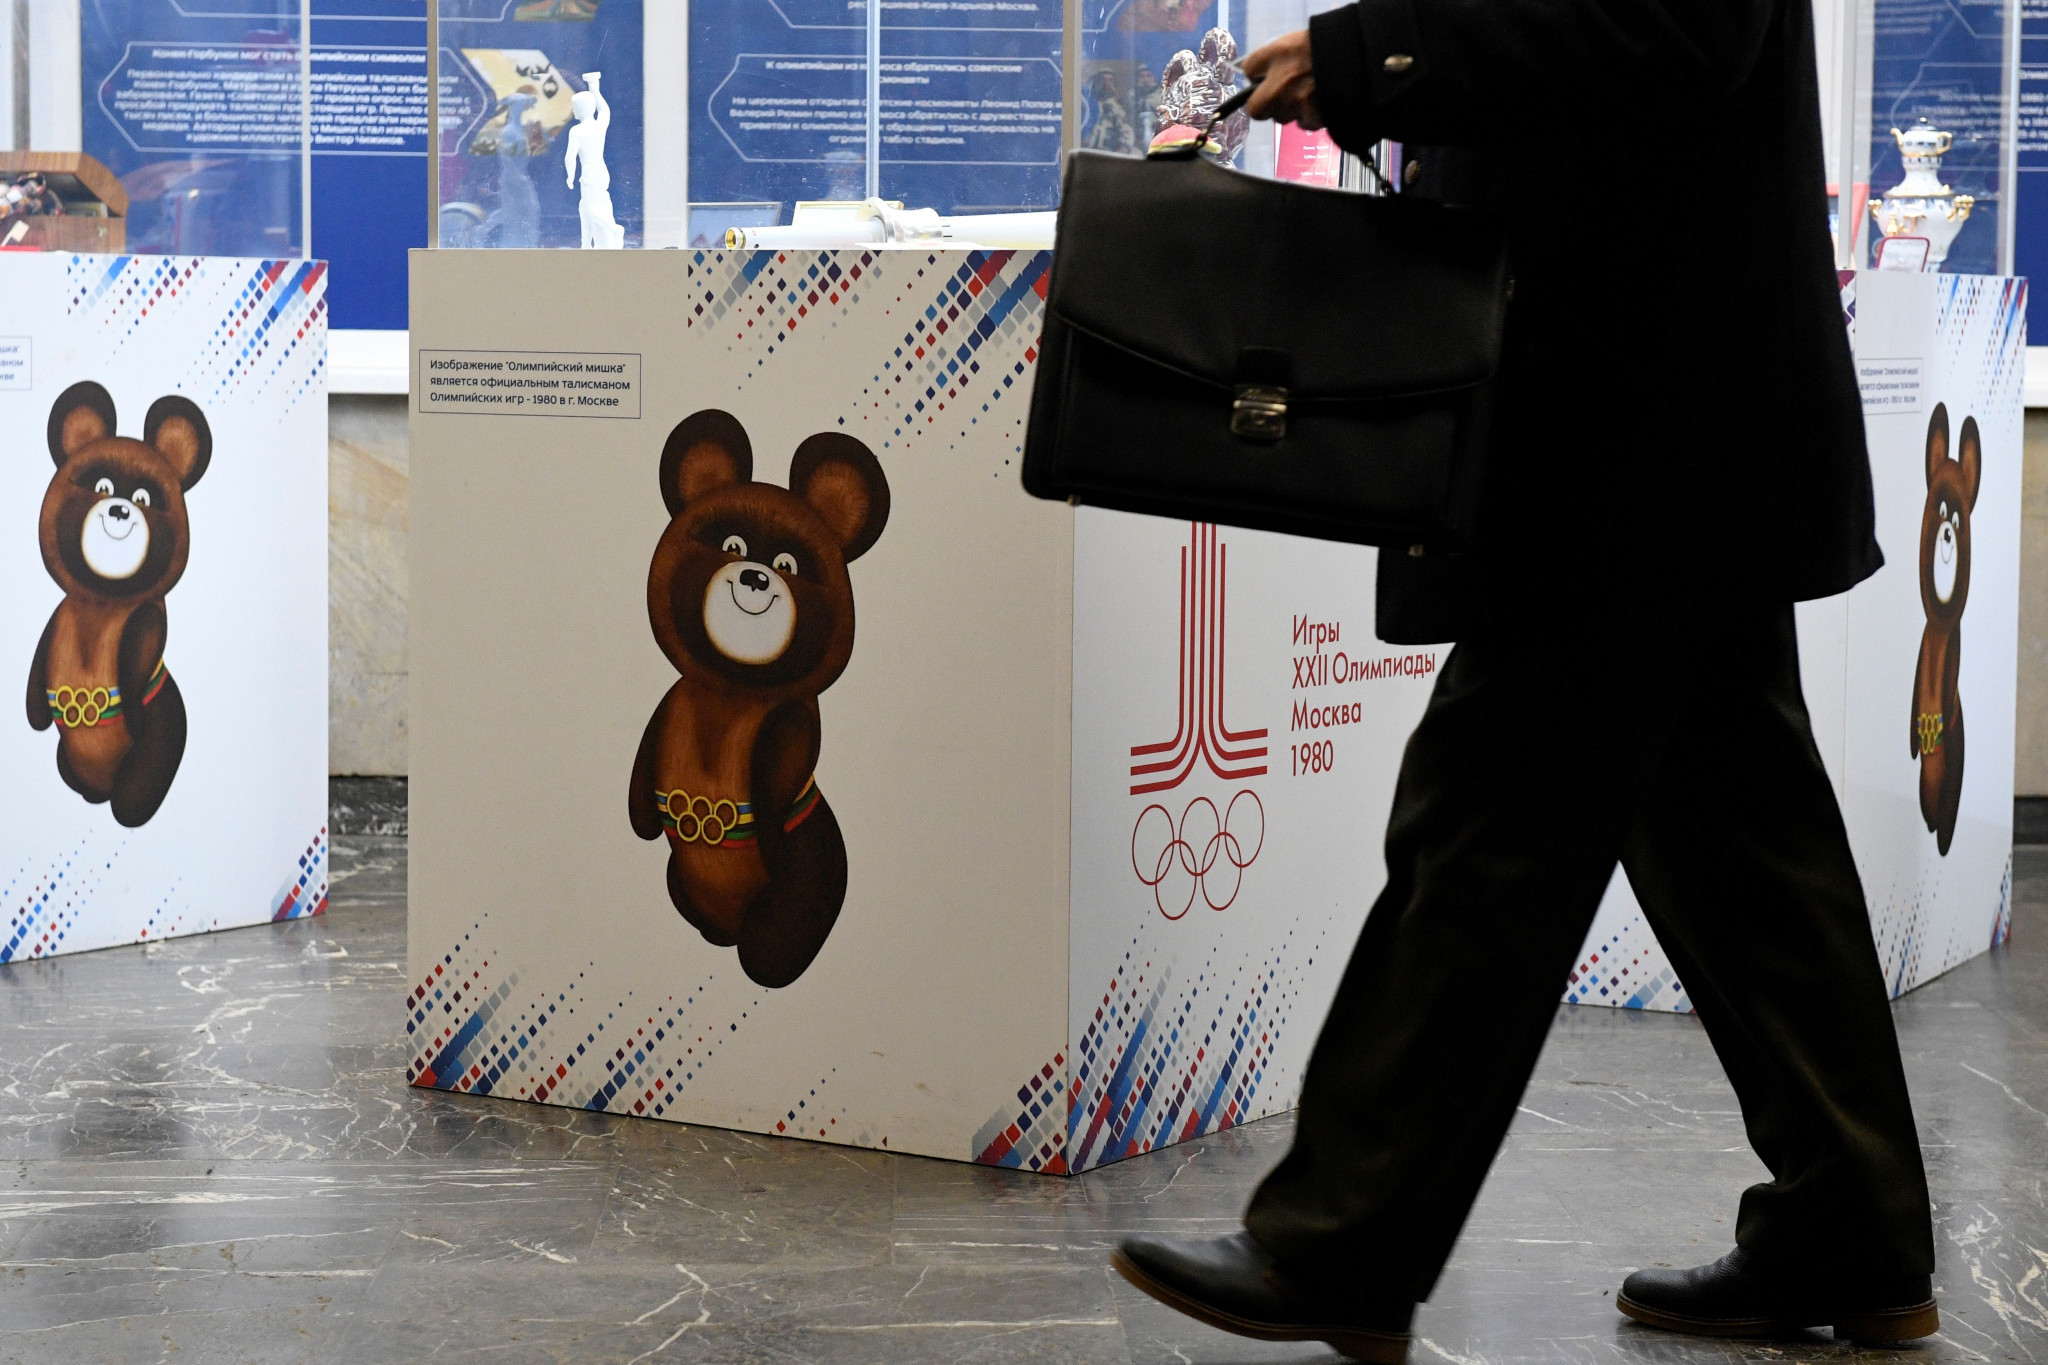 Russian athletes will be forced to compete under neutral status at Tokyo 2020 ©Getty Images